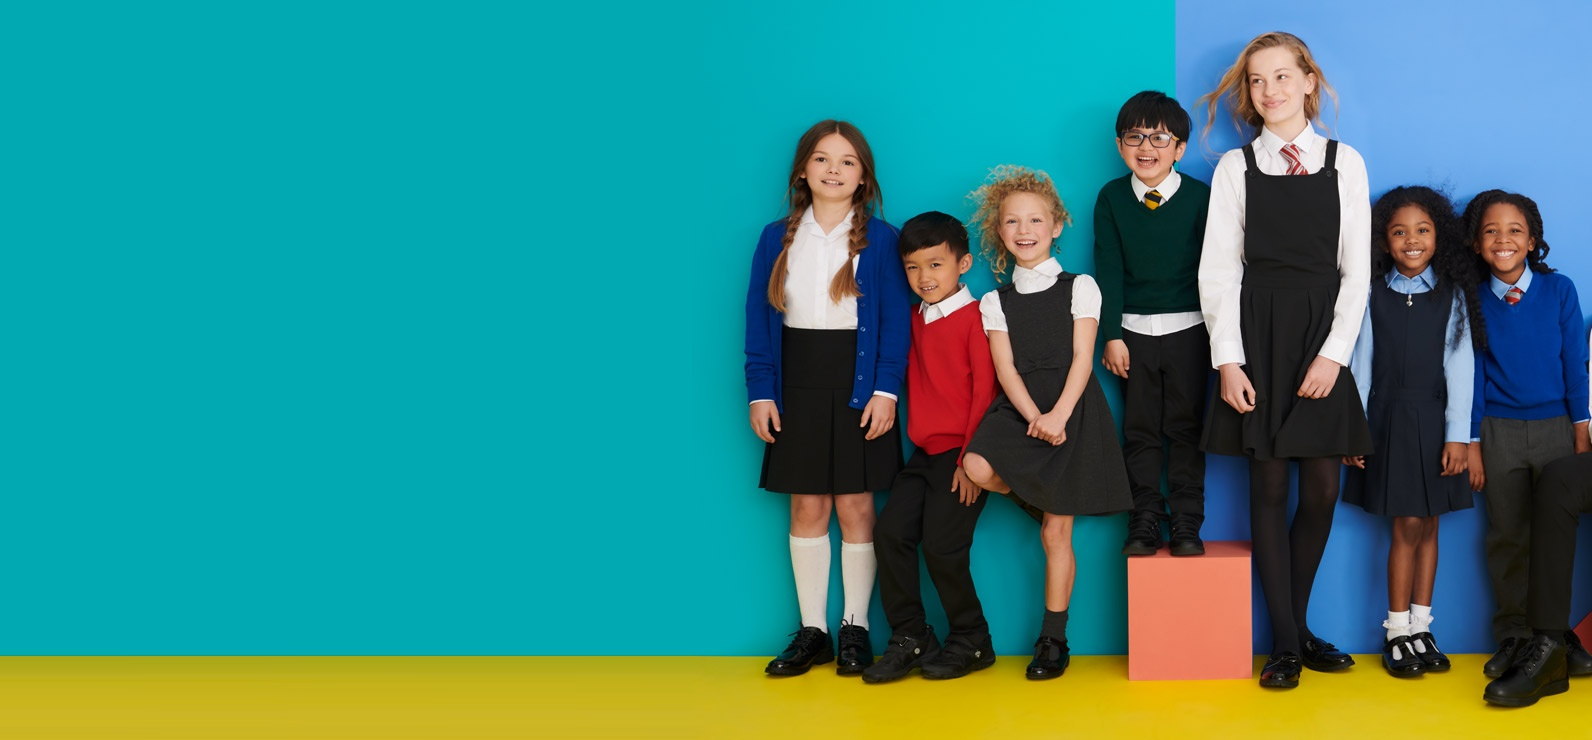 acc79ca92b1d School uniform - Kids | Debenhams